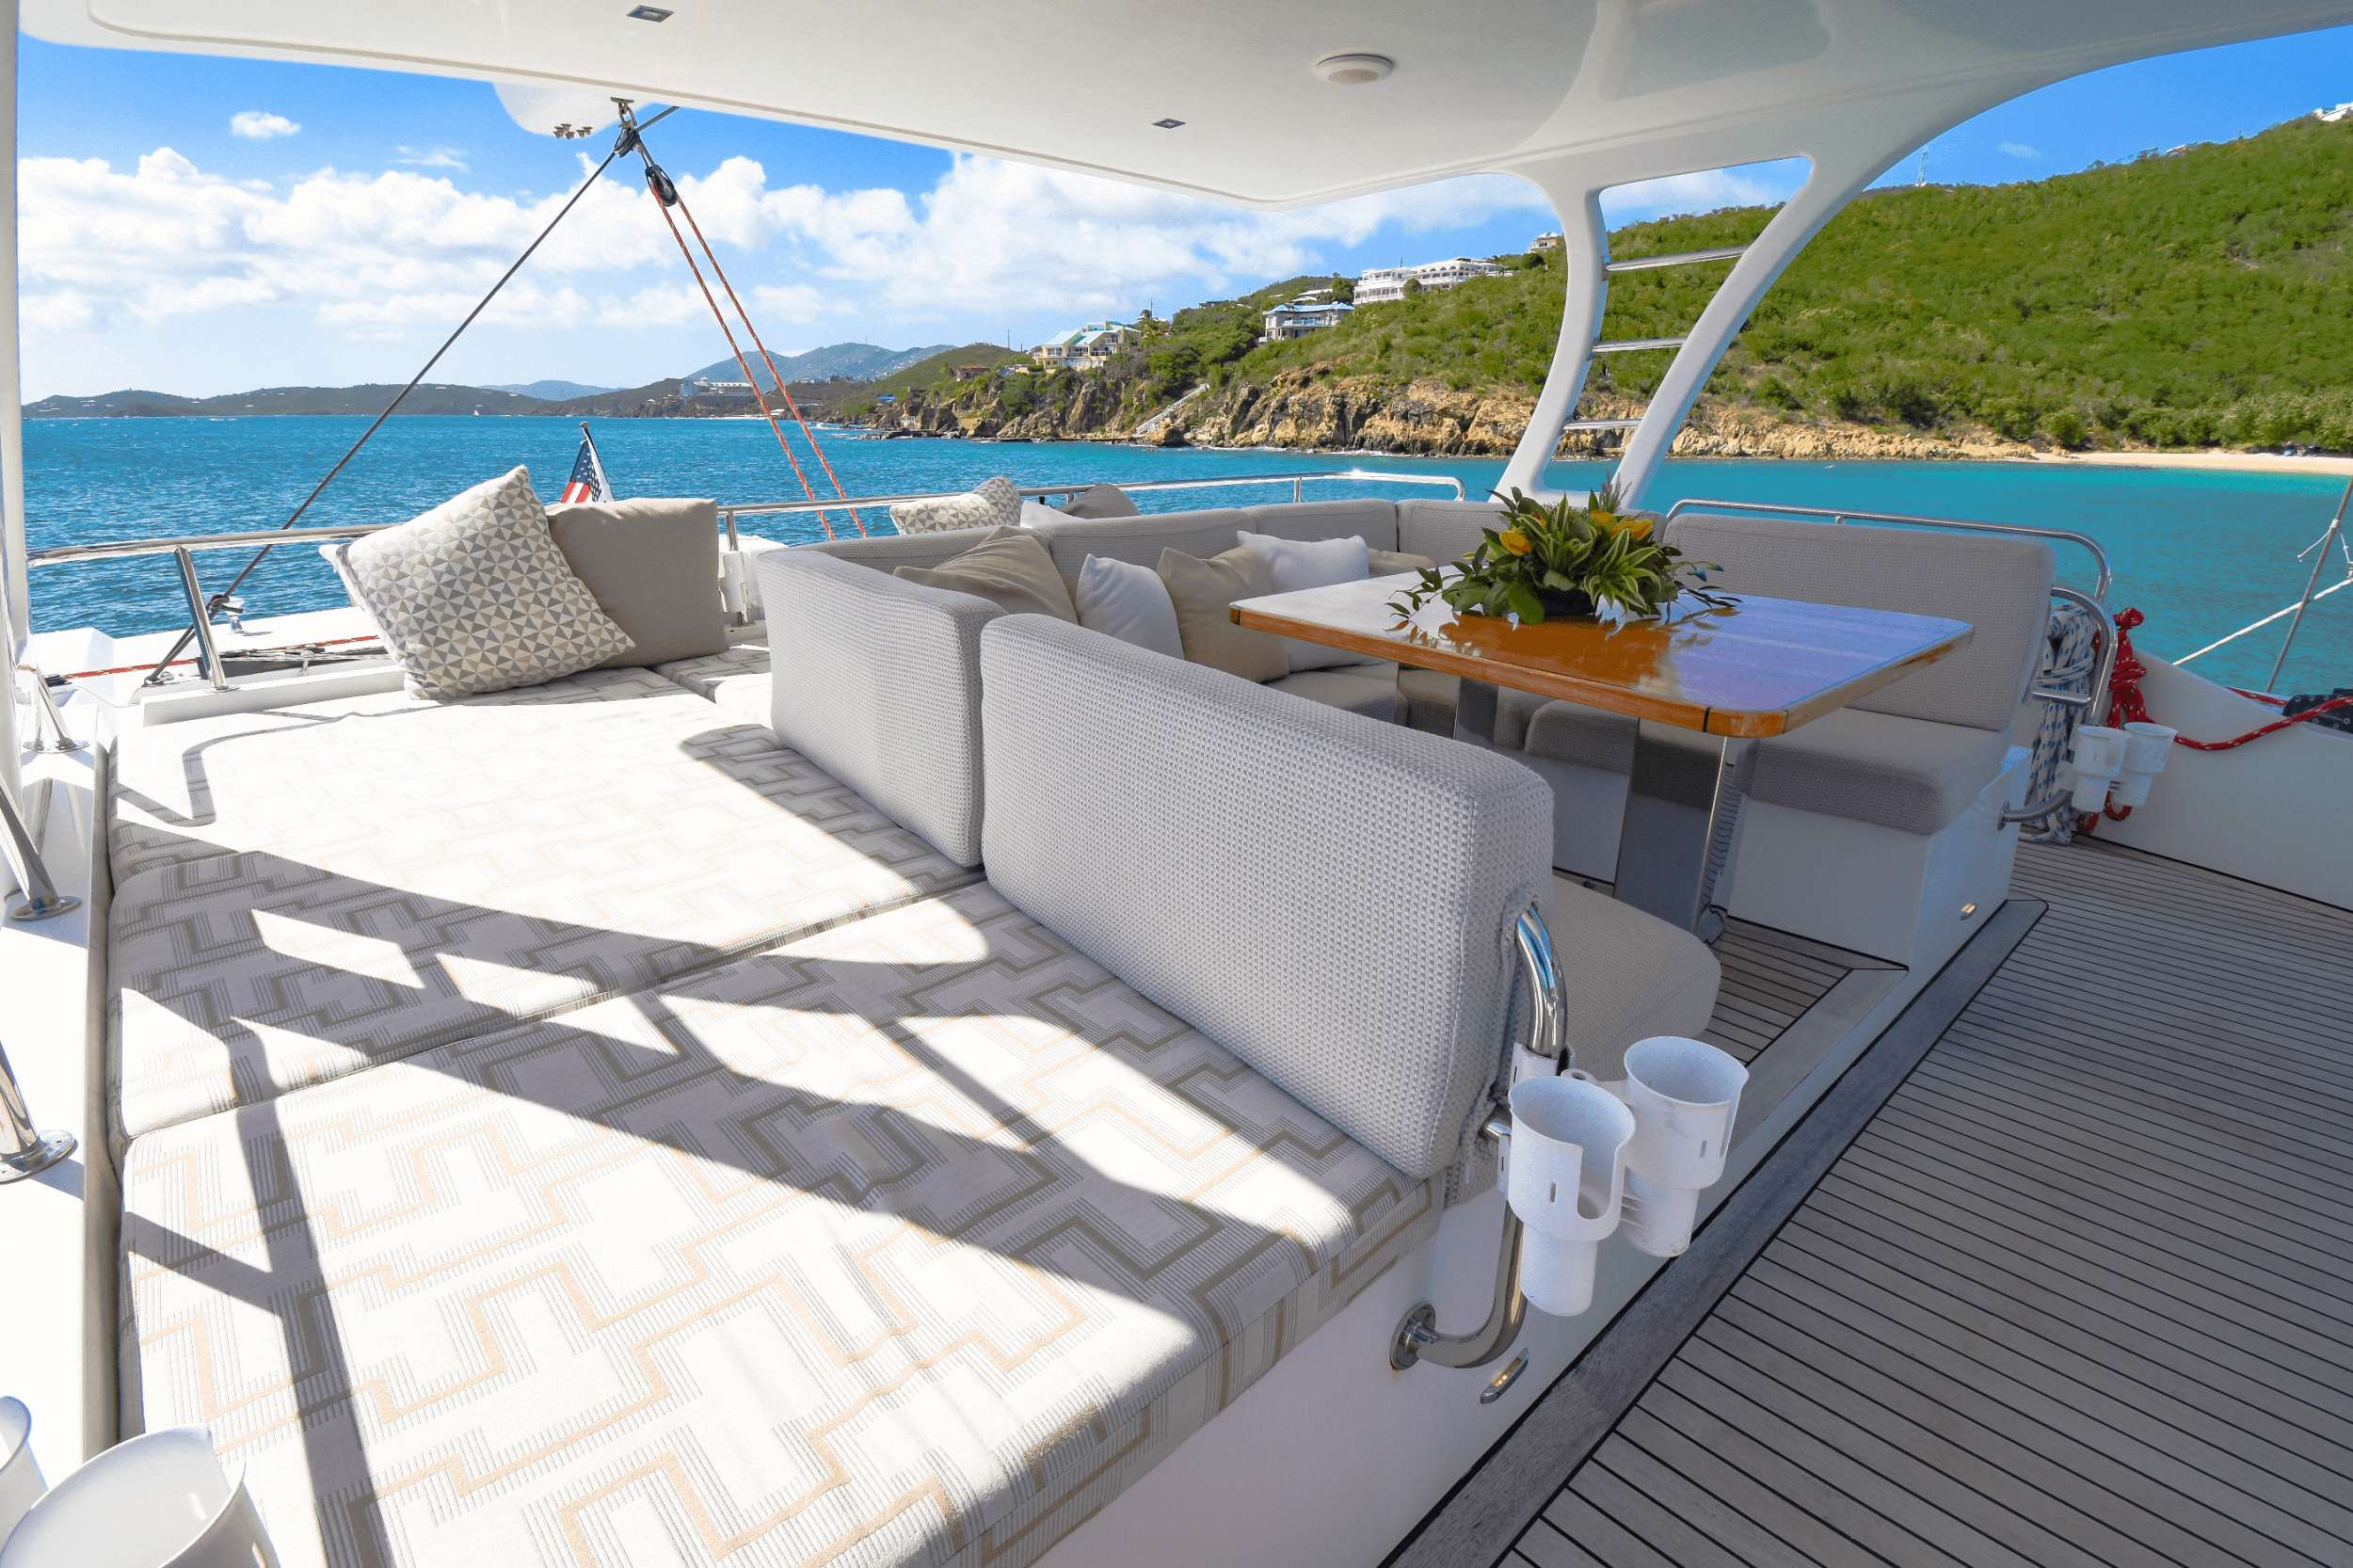 Aft deck lounge and alfresco dining